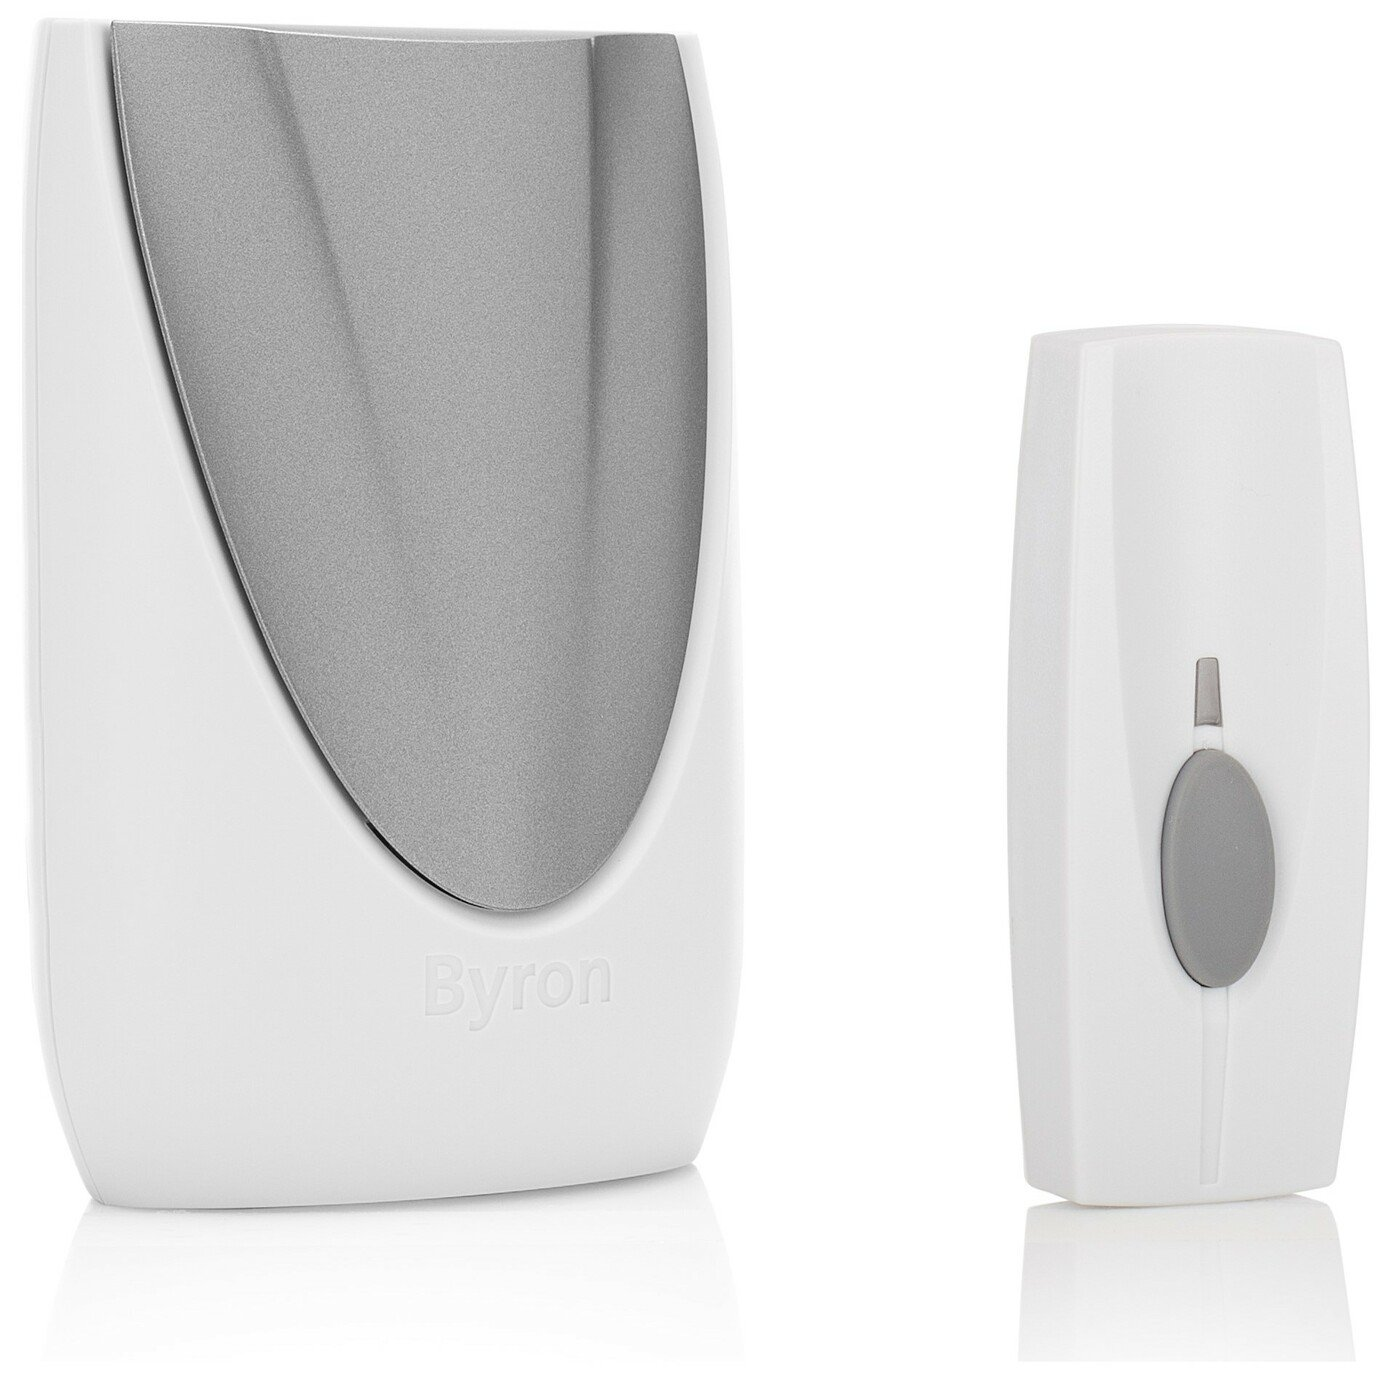 Byron BY216 125m Wireless Plug In Doorbell